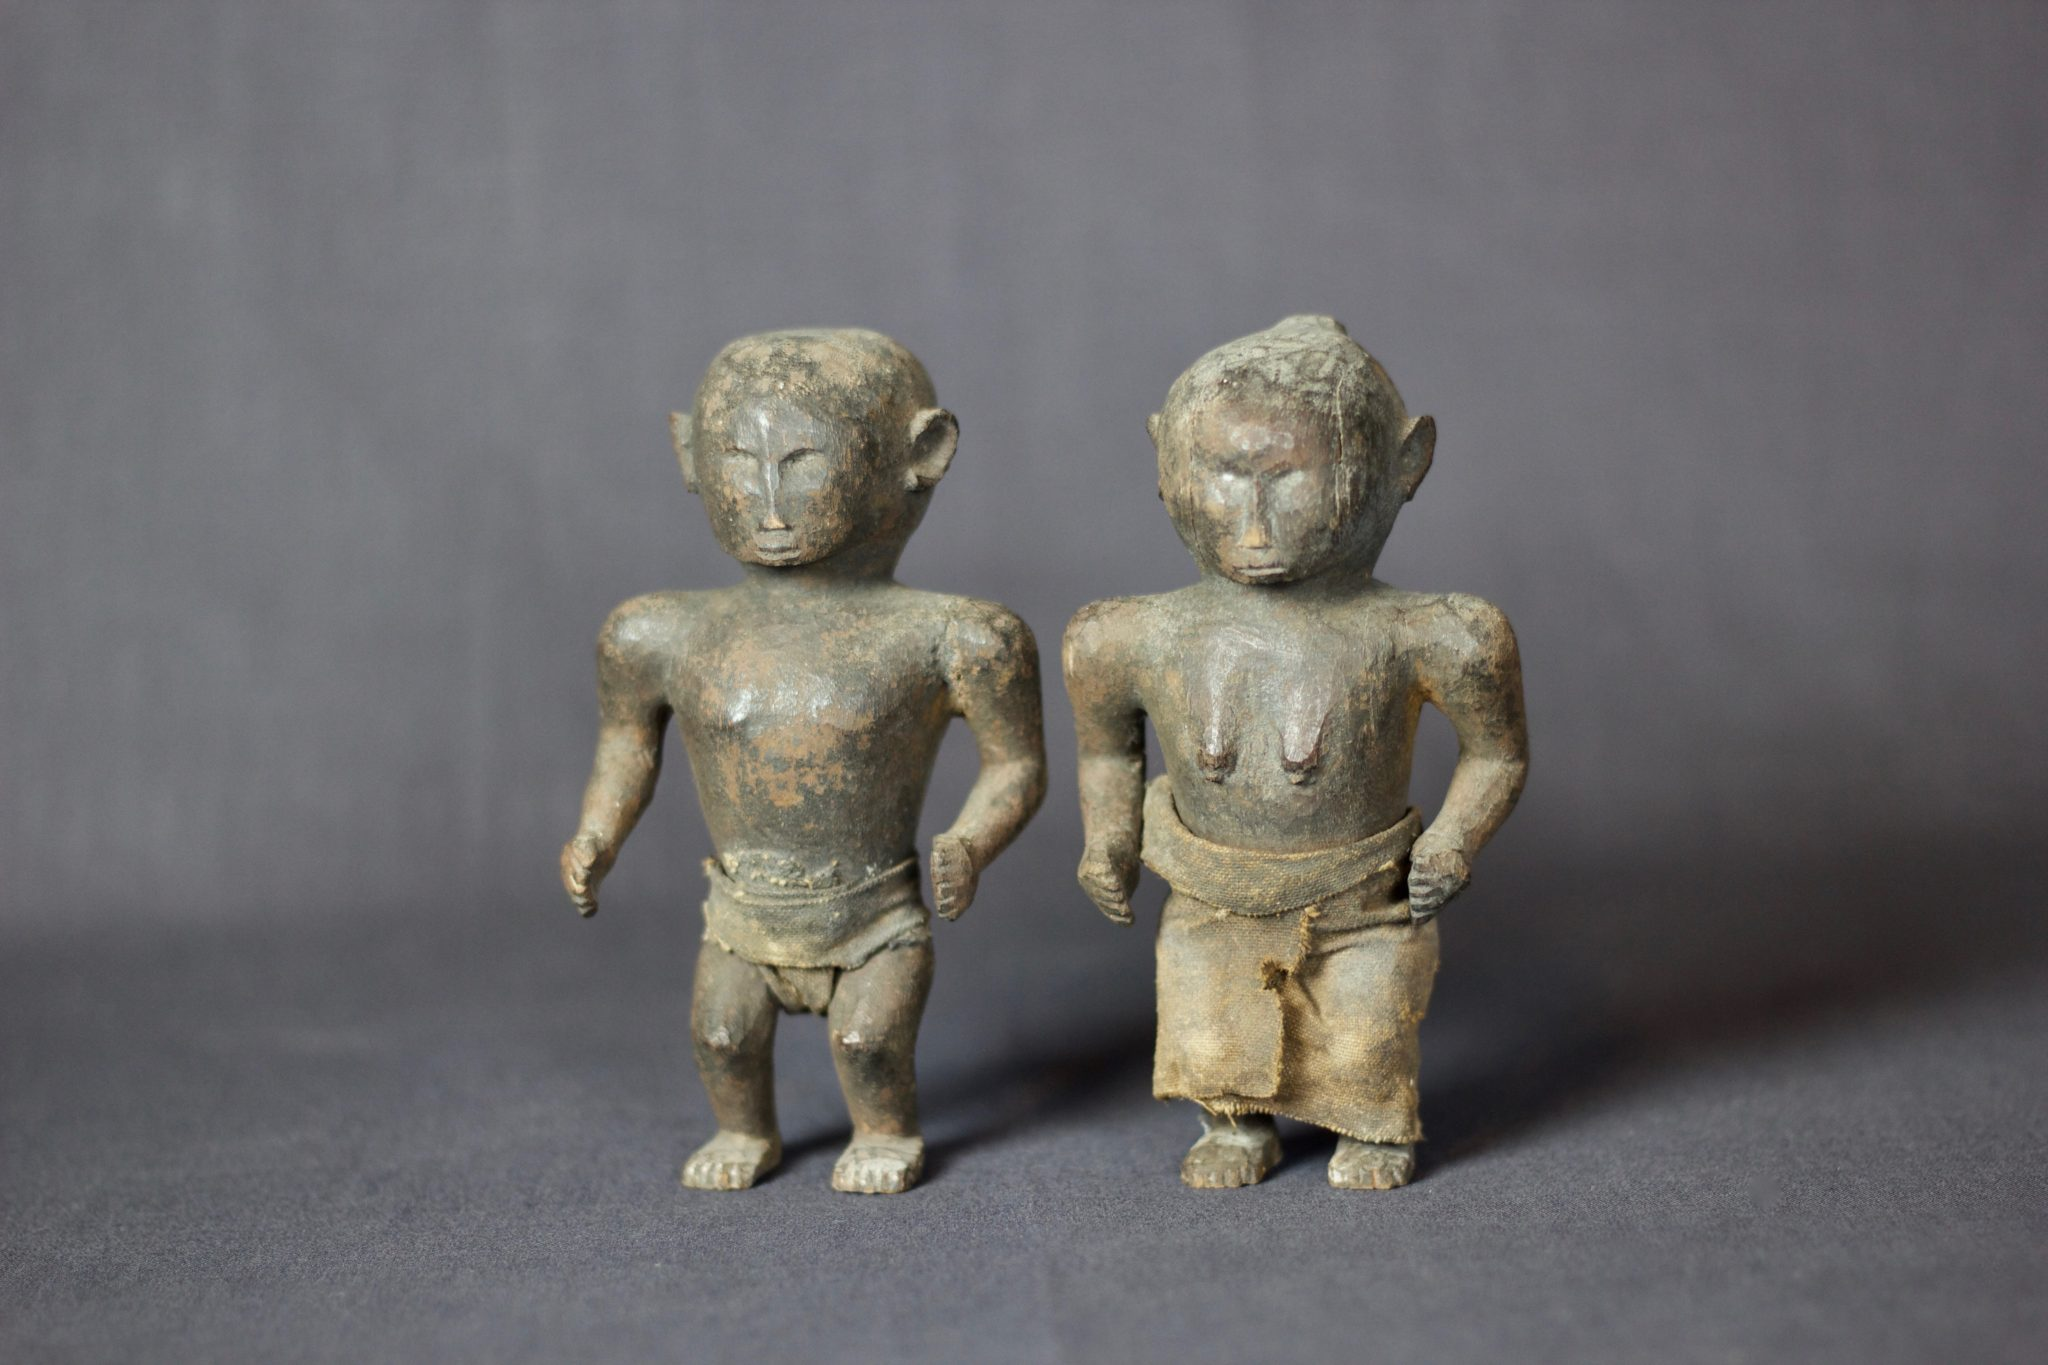 """Shaman Healing Couple Effigy, West Sumba Island, Lesser Sunda Islands, Indonesia, Anakalang village Early to mid 20th c, Wood, fiber cloth, patinated with use and age, Used in healing rituals and to fix marriages. Dimensions: (left, male: 5 ¼"""" x 3 ¼"""" x 2""""); (right, female: 5"""" x 3"""" x 2""""), $420. sold as a pair"""